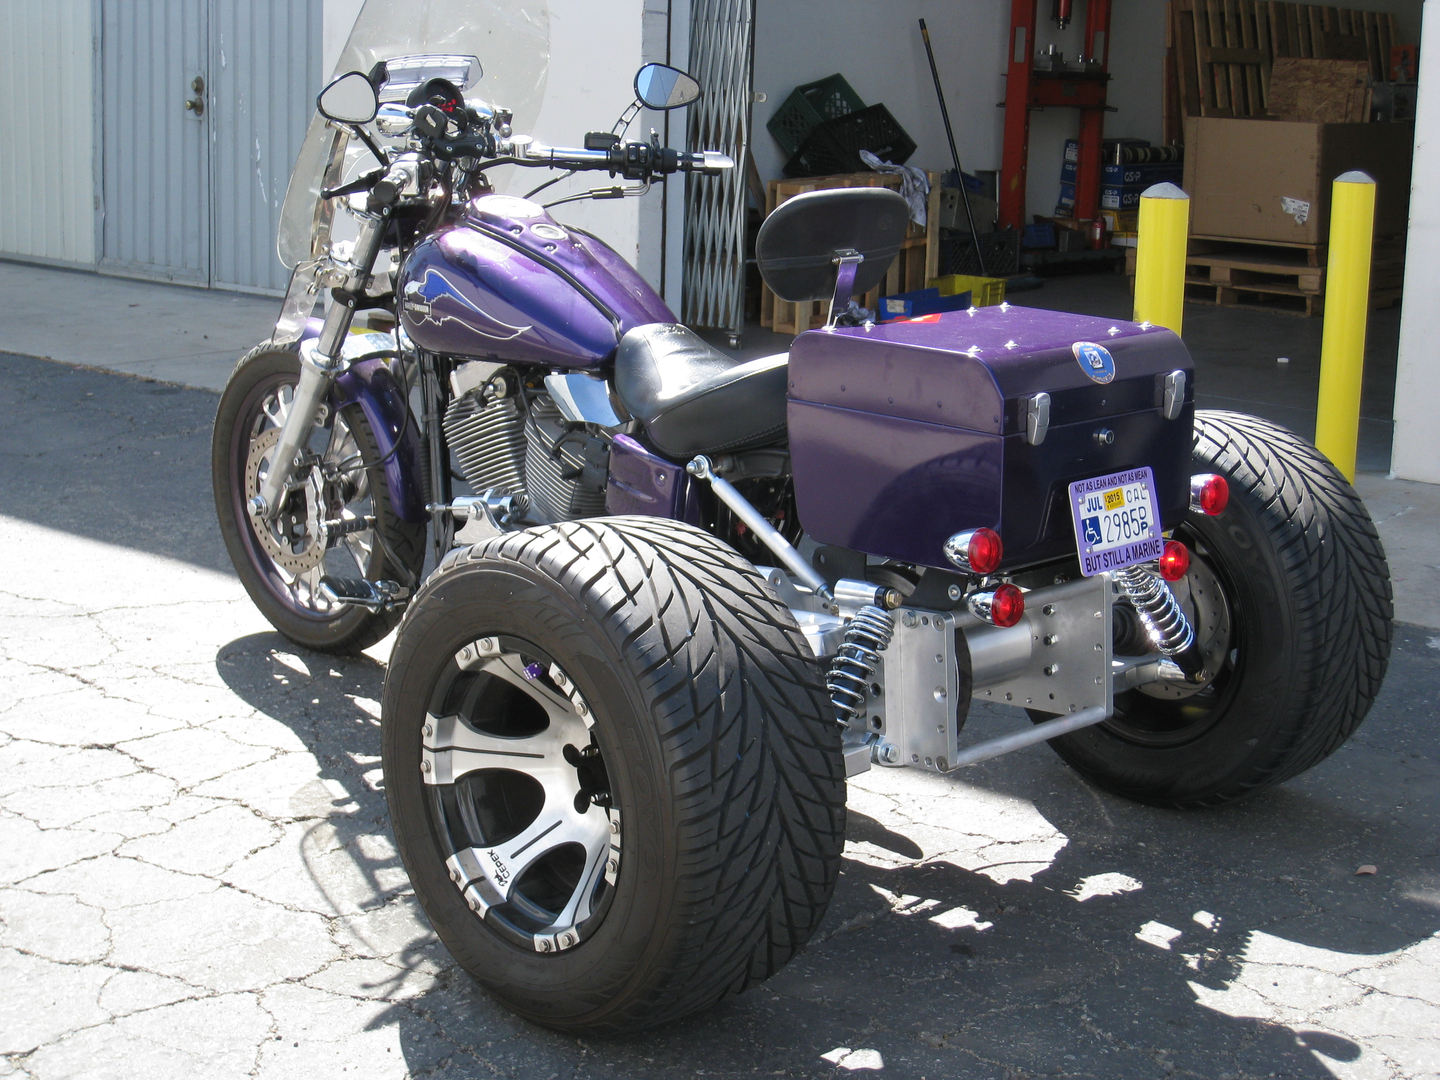 Trike Kits for Harley-Davidson Trike Conversion-IMC Trike IRS Trike